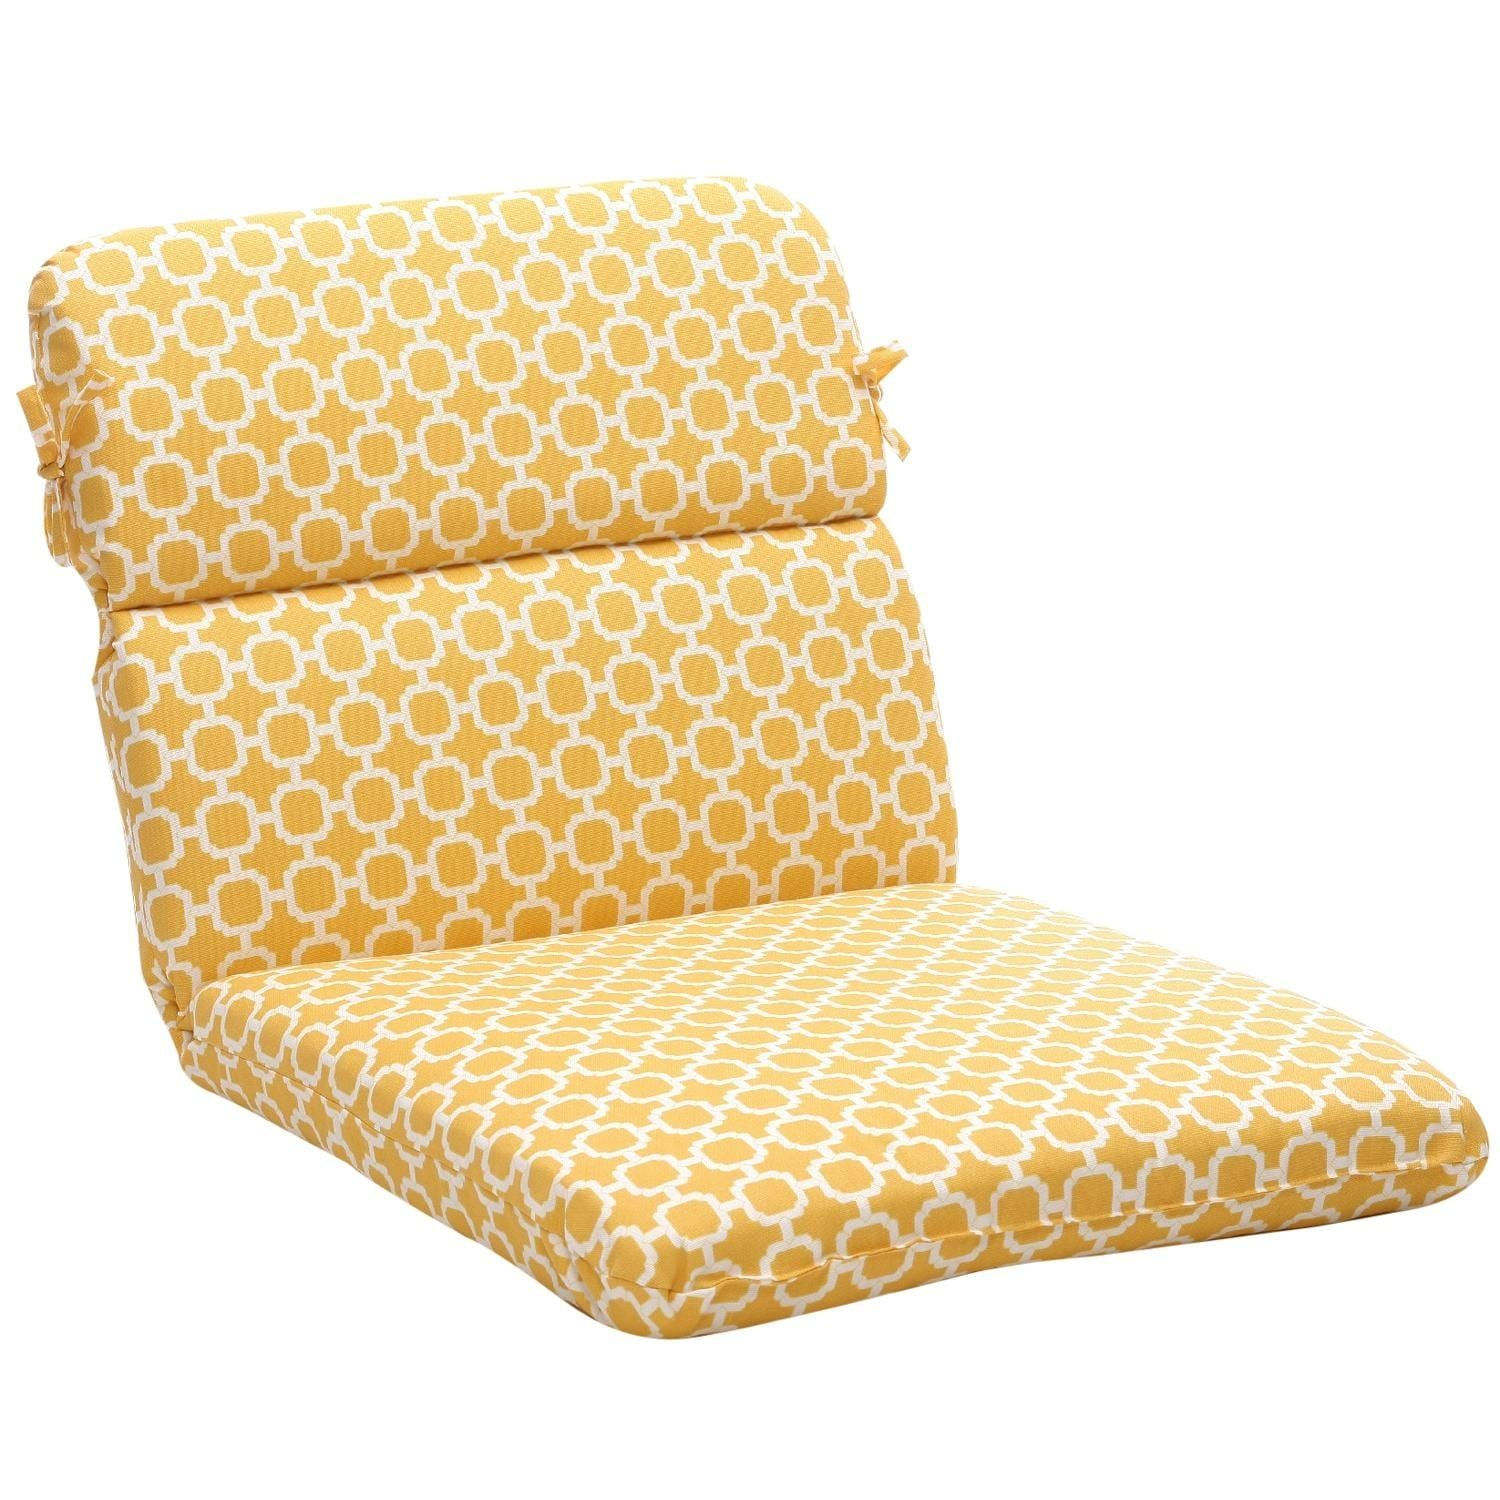 40 5 eco friendly rounded outdoor chair cushion geometric